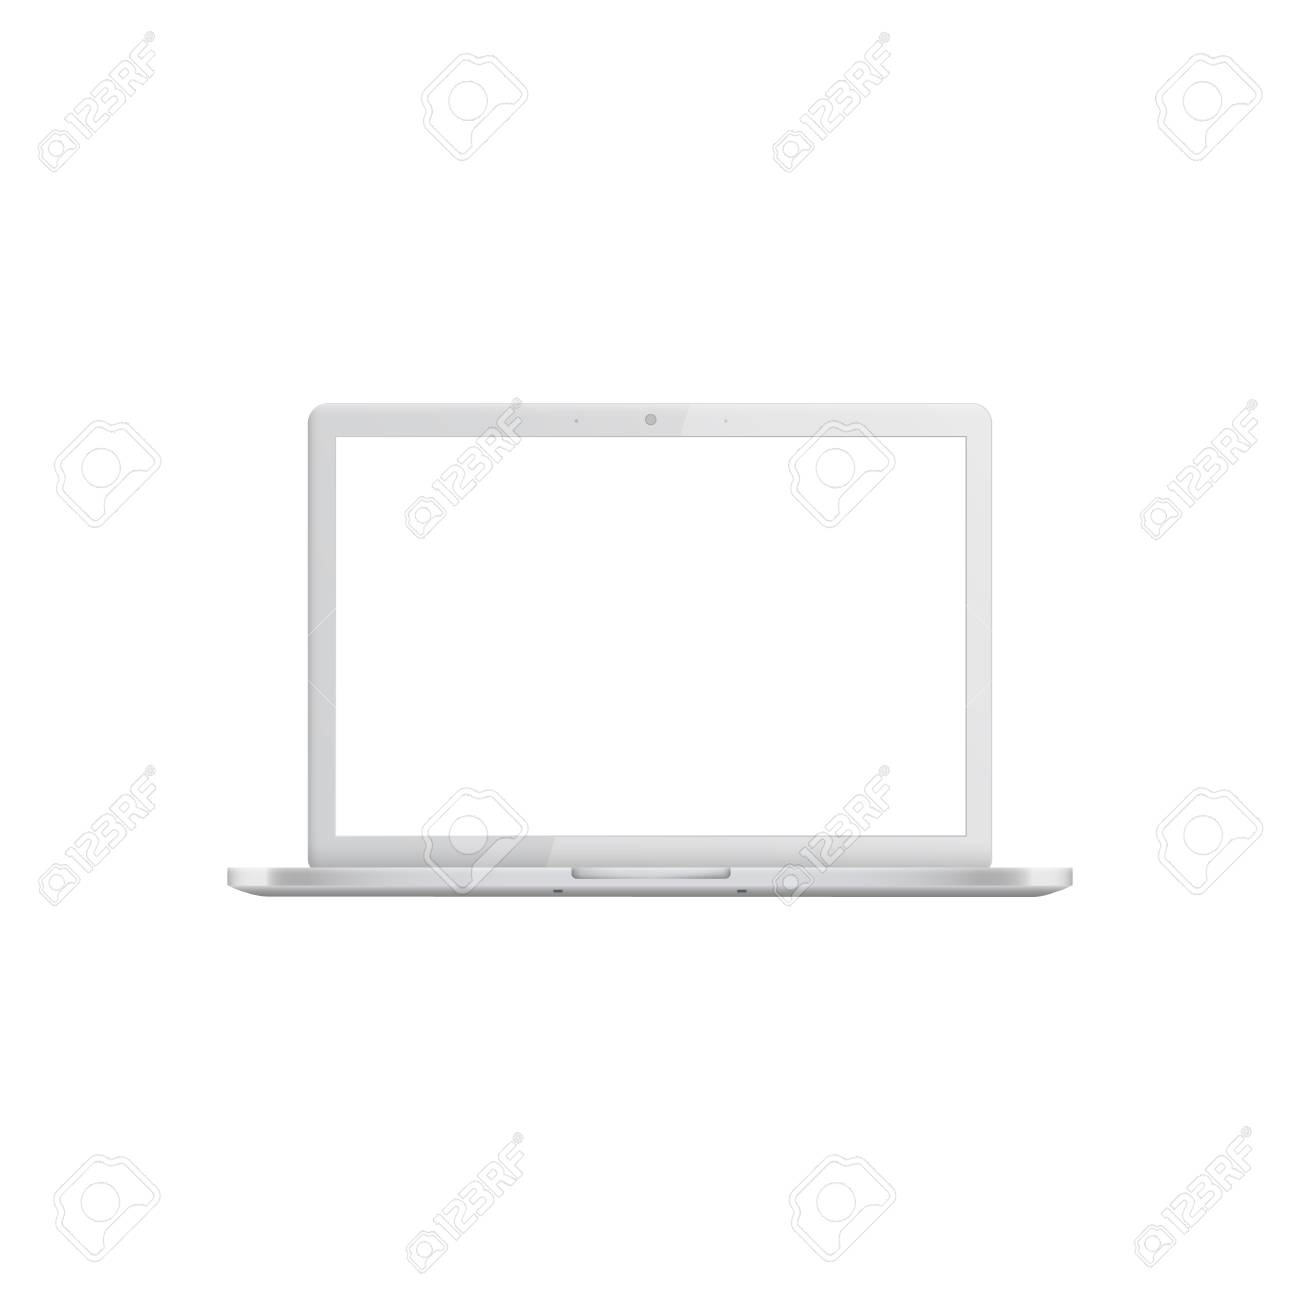 White laptop with blank screen, realistic mockup of open silver modern portable computer, empty template of mobile digital equipment. Vector illustration isolated on white background - 122280787